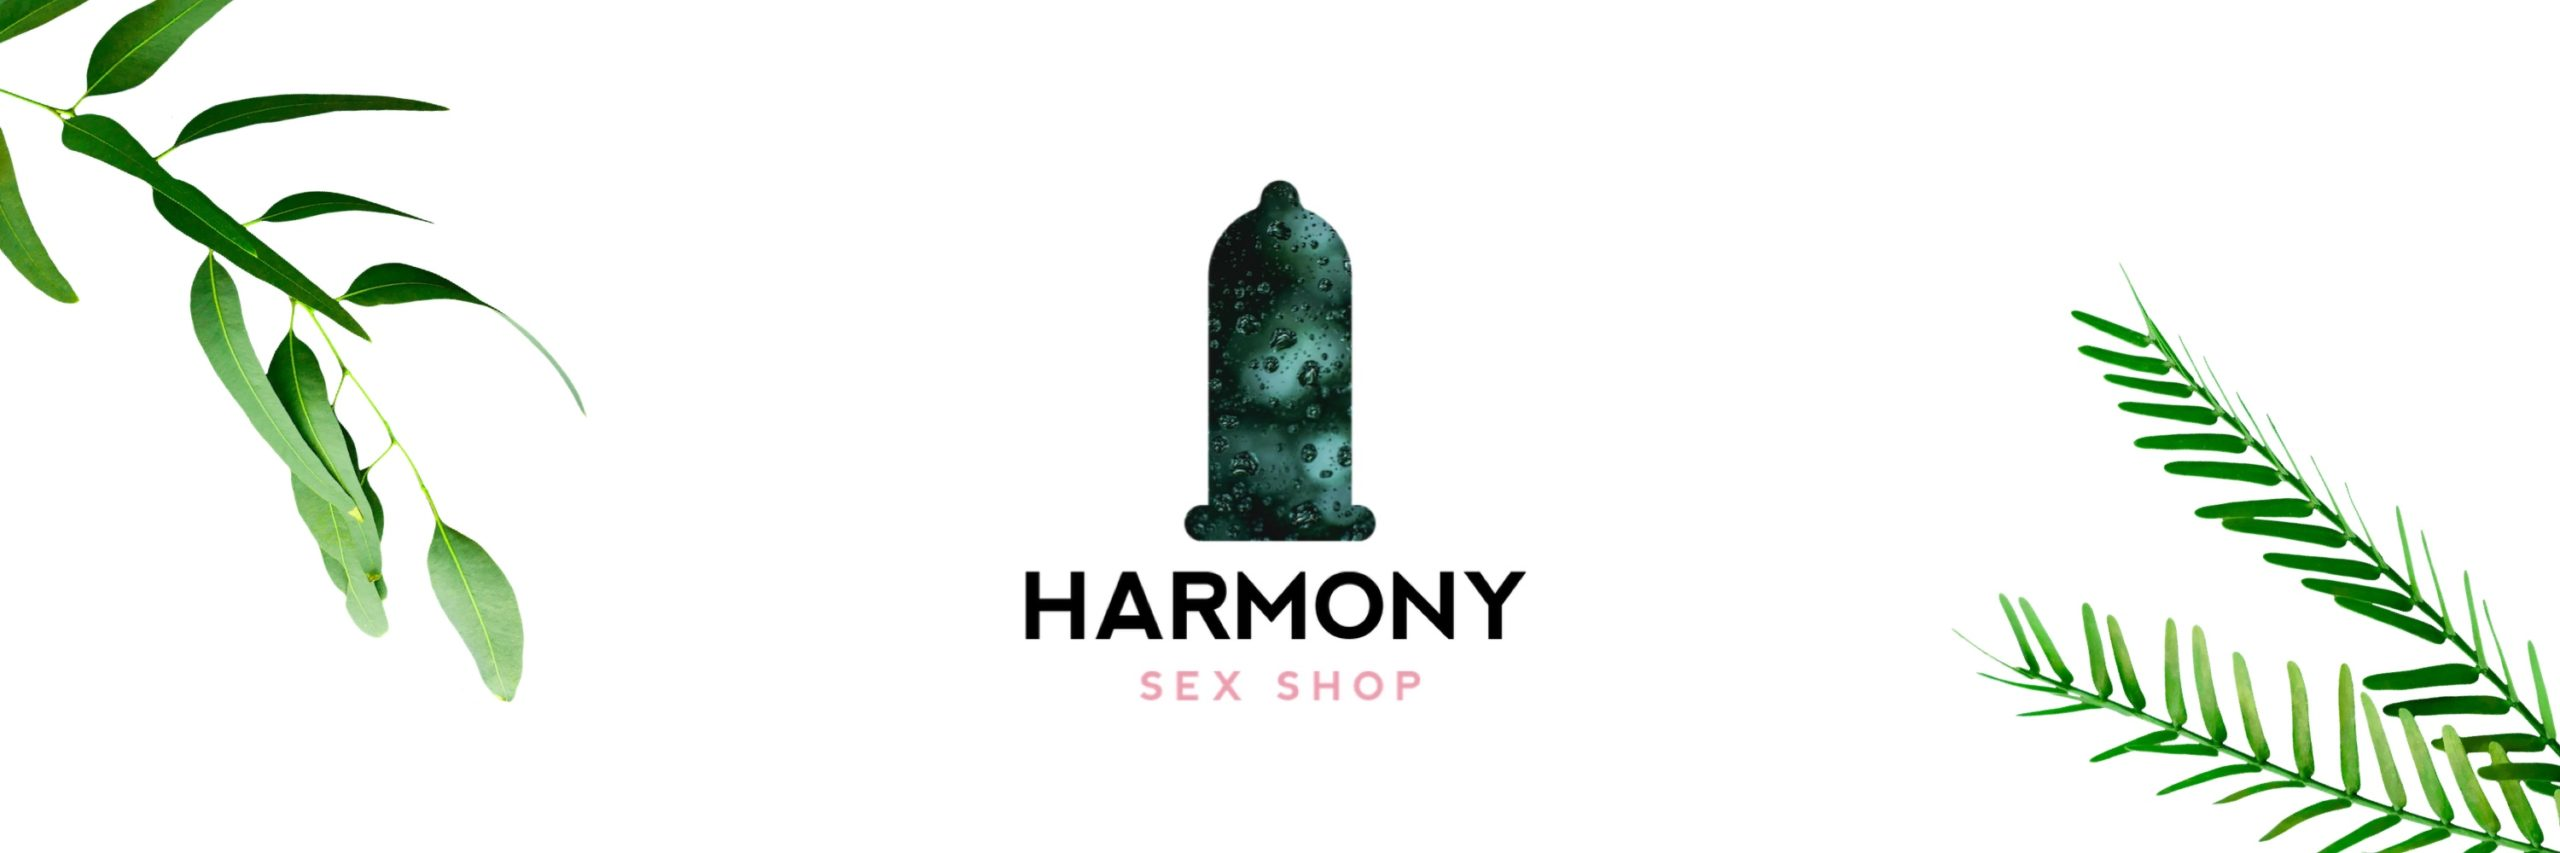 Секс шоп Гармония Владивосток |SEX-SHOP125.RU| Logo